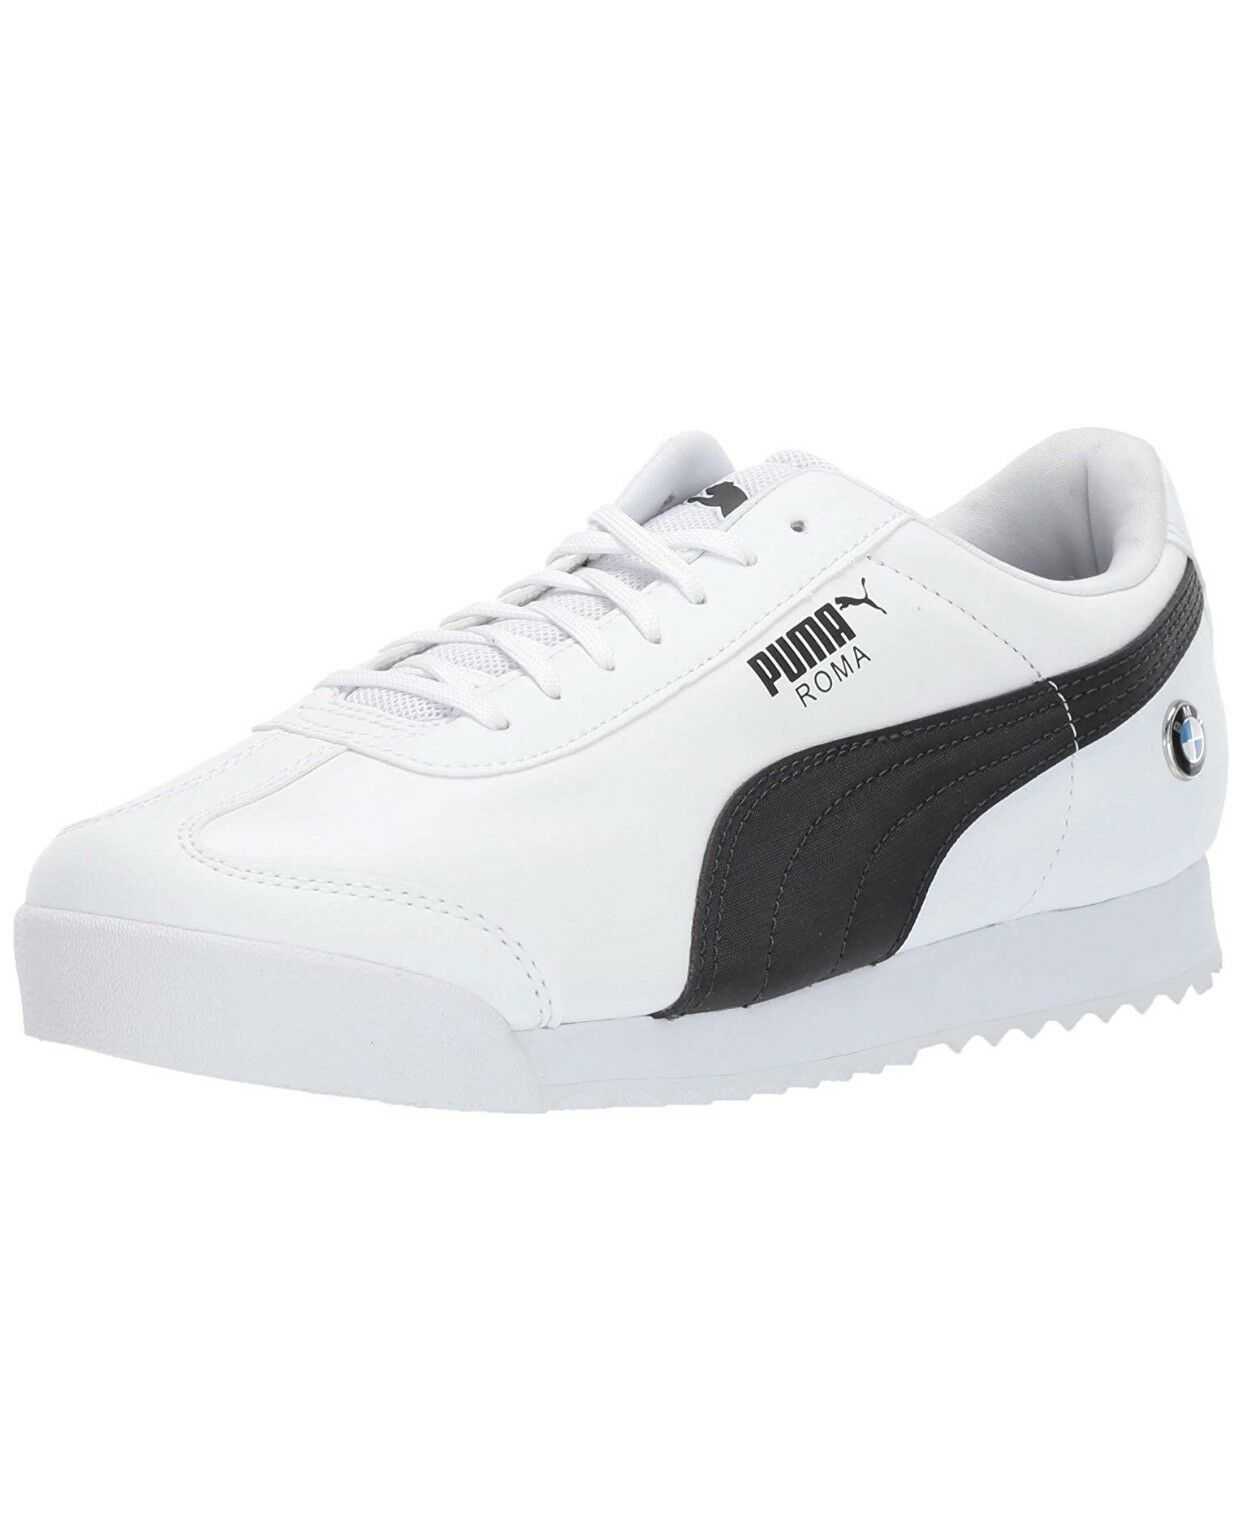 PUMA BMW MMS ROMA PUMA WHITE-ANTHRACITE 306195-02 SNEAKERS MEN SHOES S-B